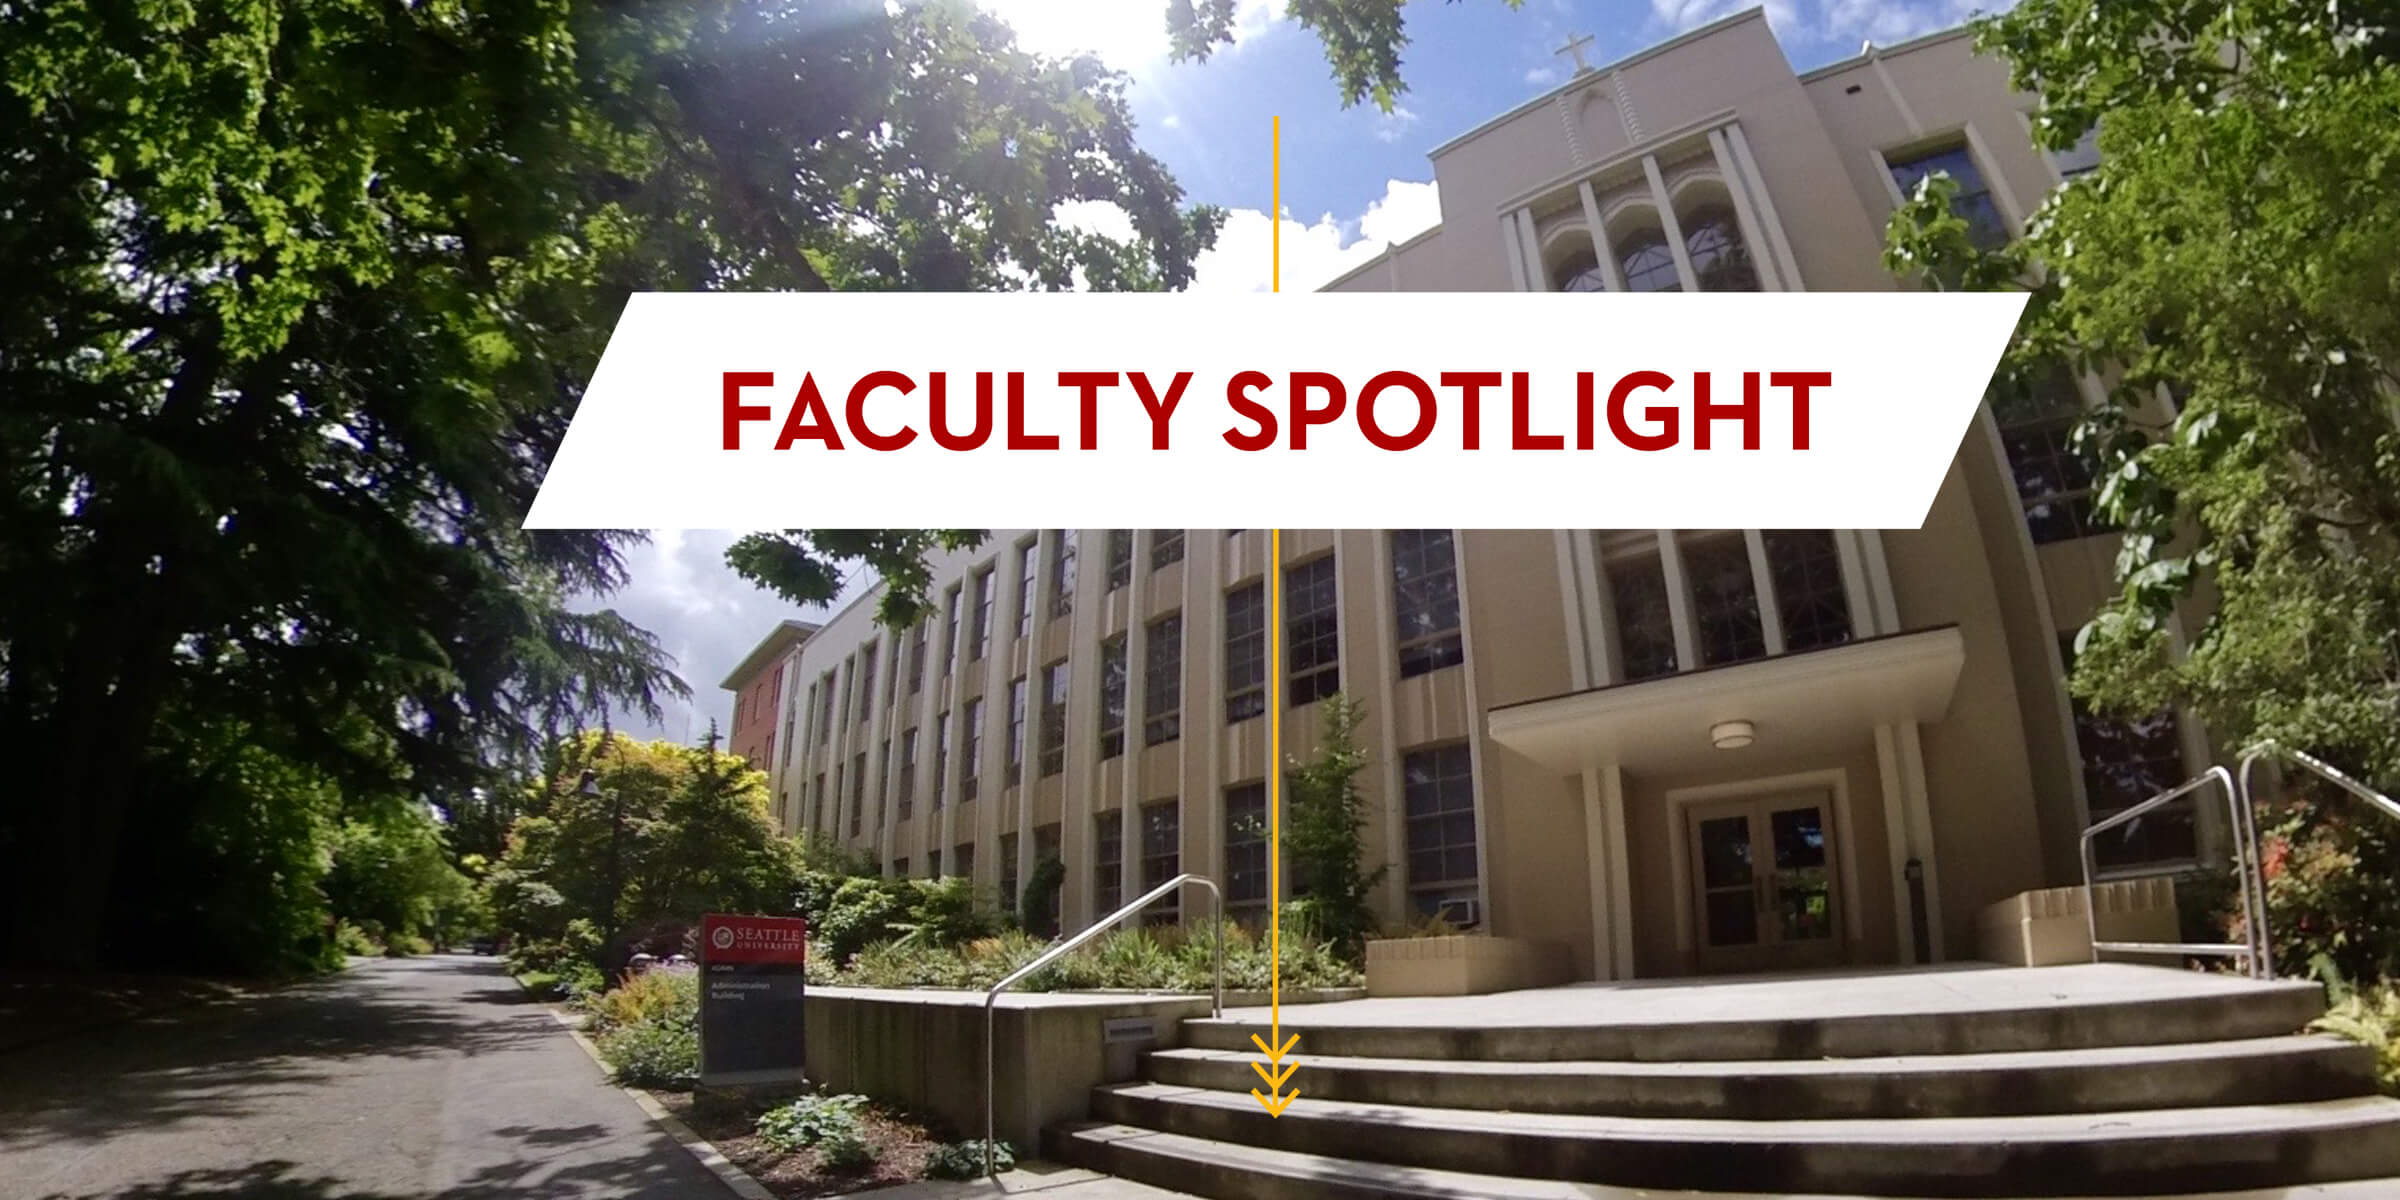 Exterior image of campus building with title graphic that reads Faculty Spotlight.